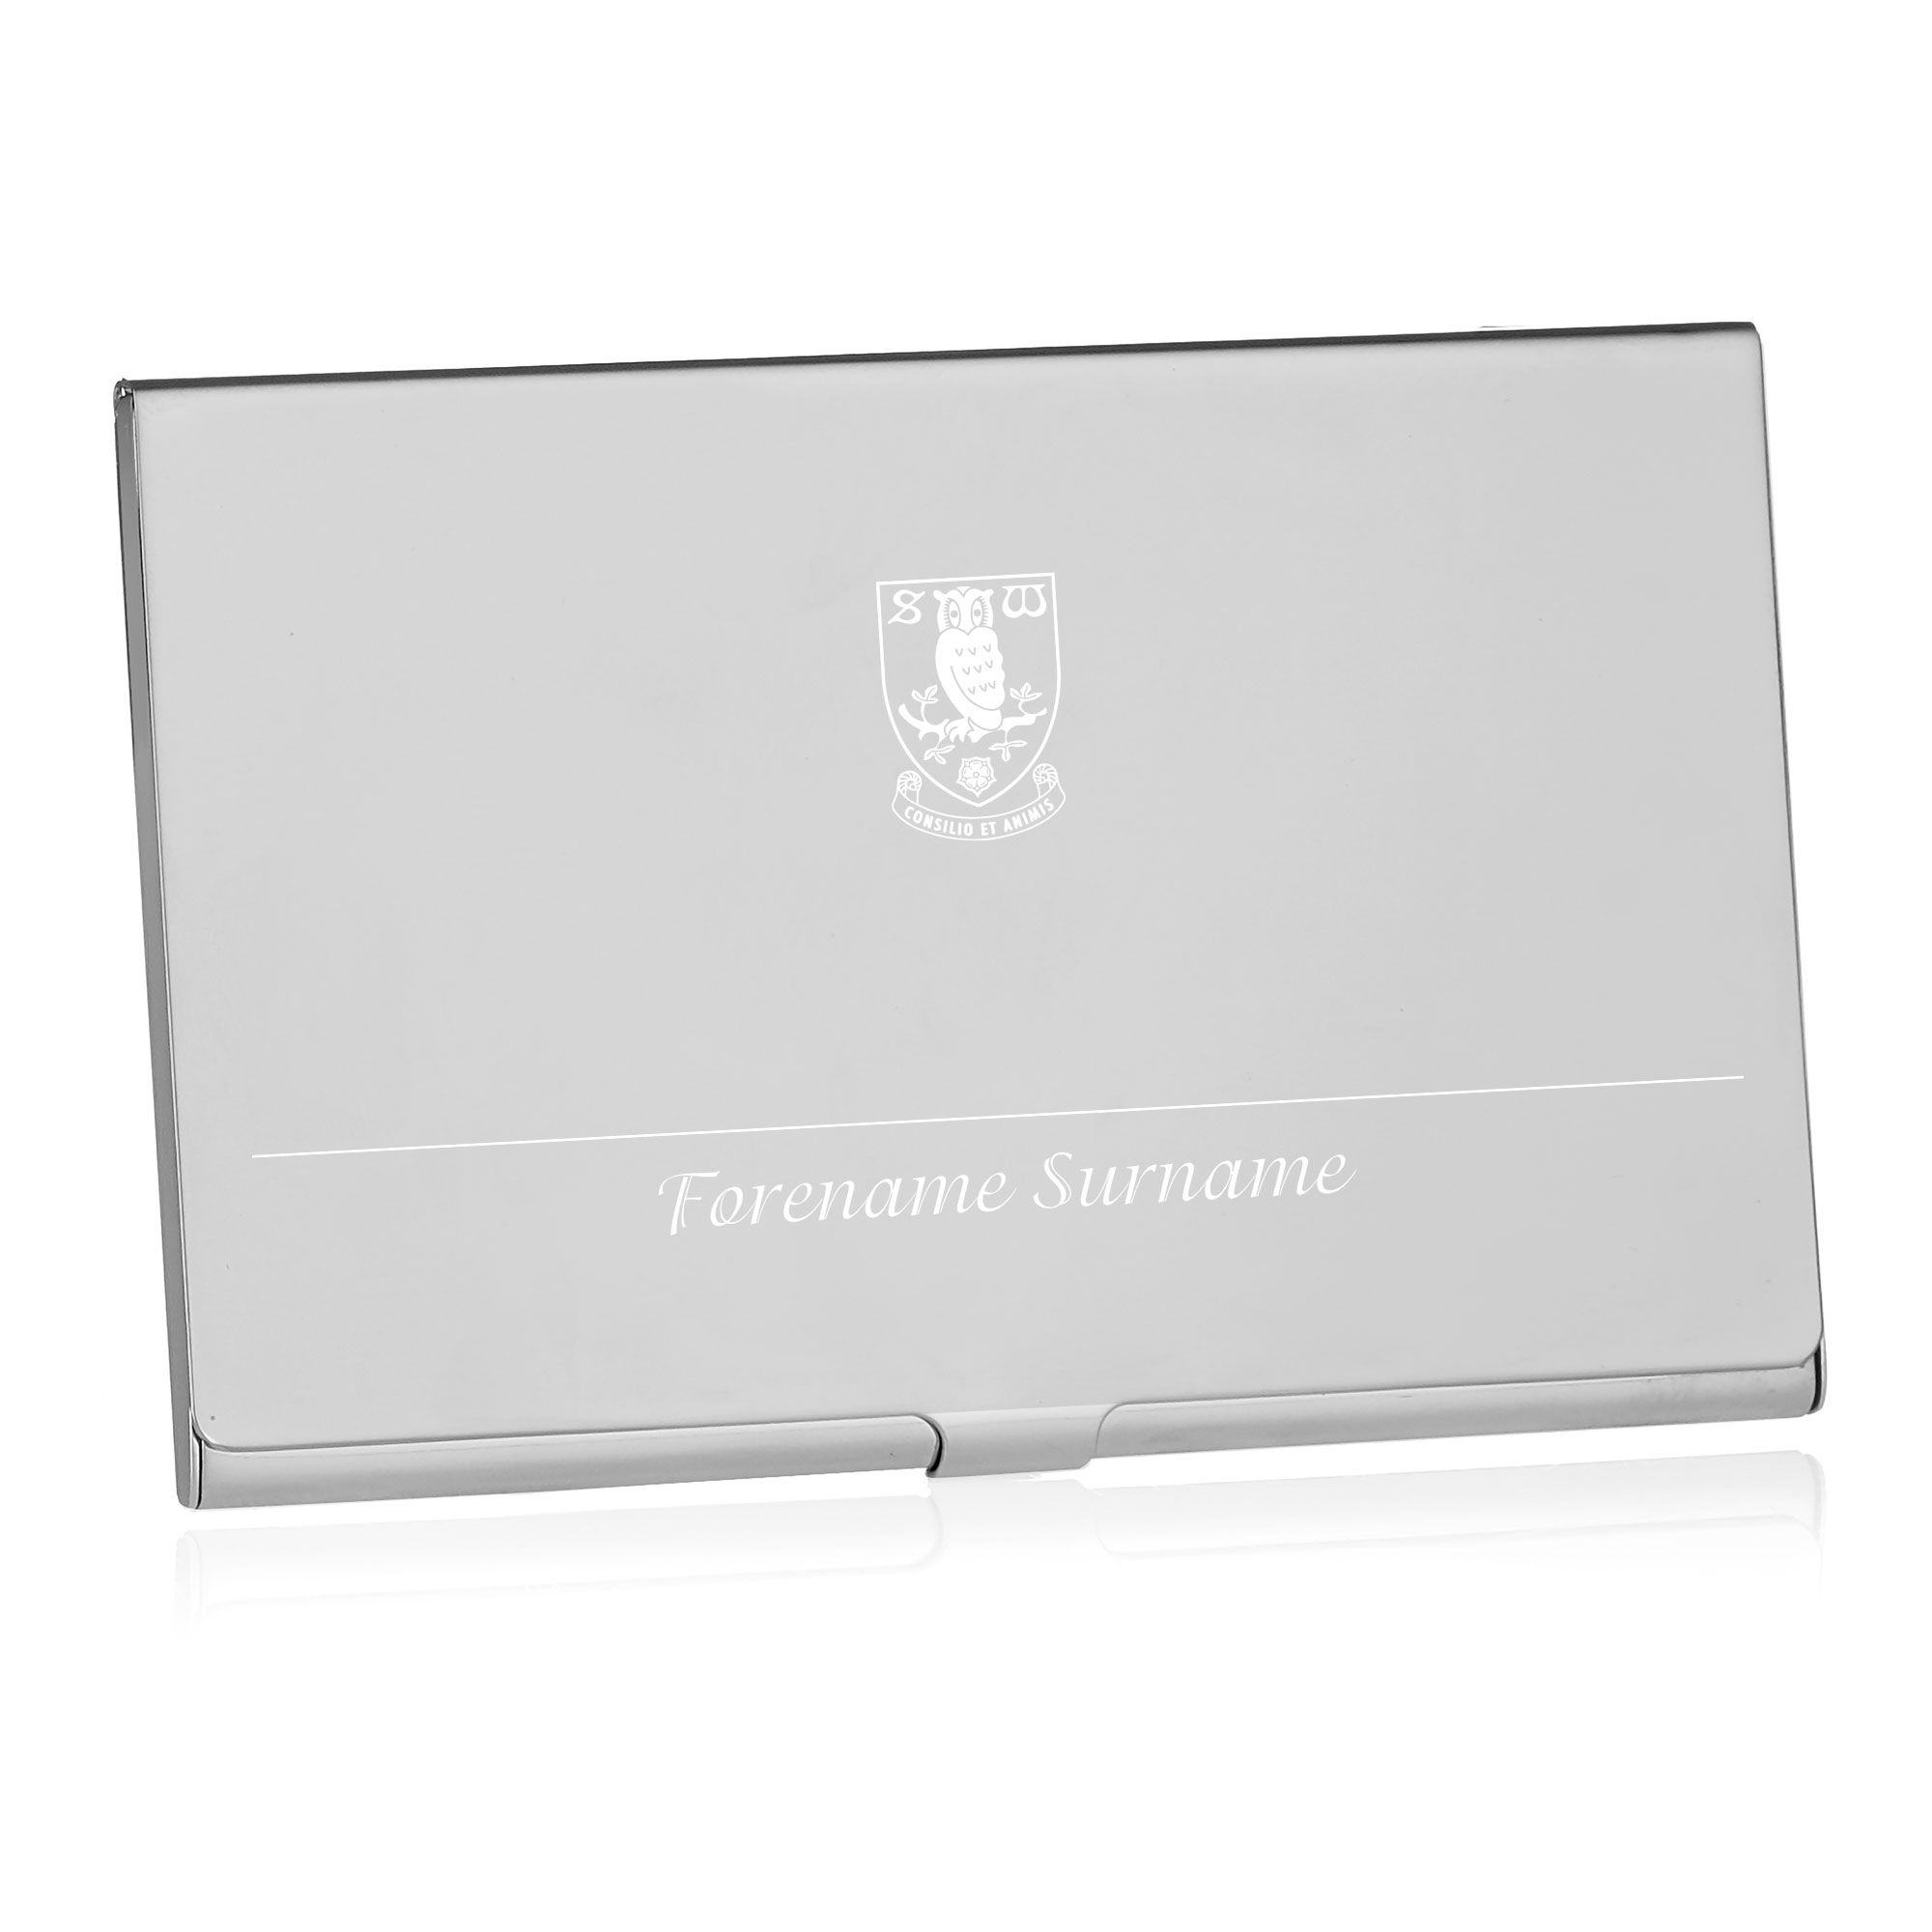 Sheffield Wednesday FC Executive Business Card Holder | Personalised ...